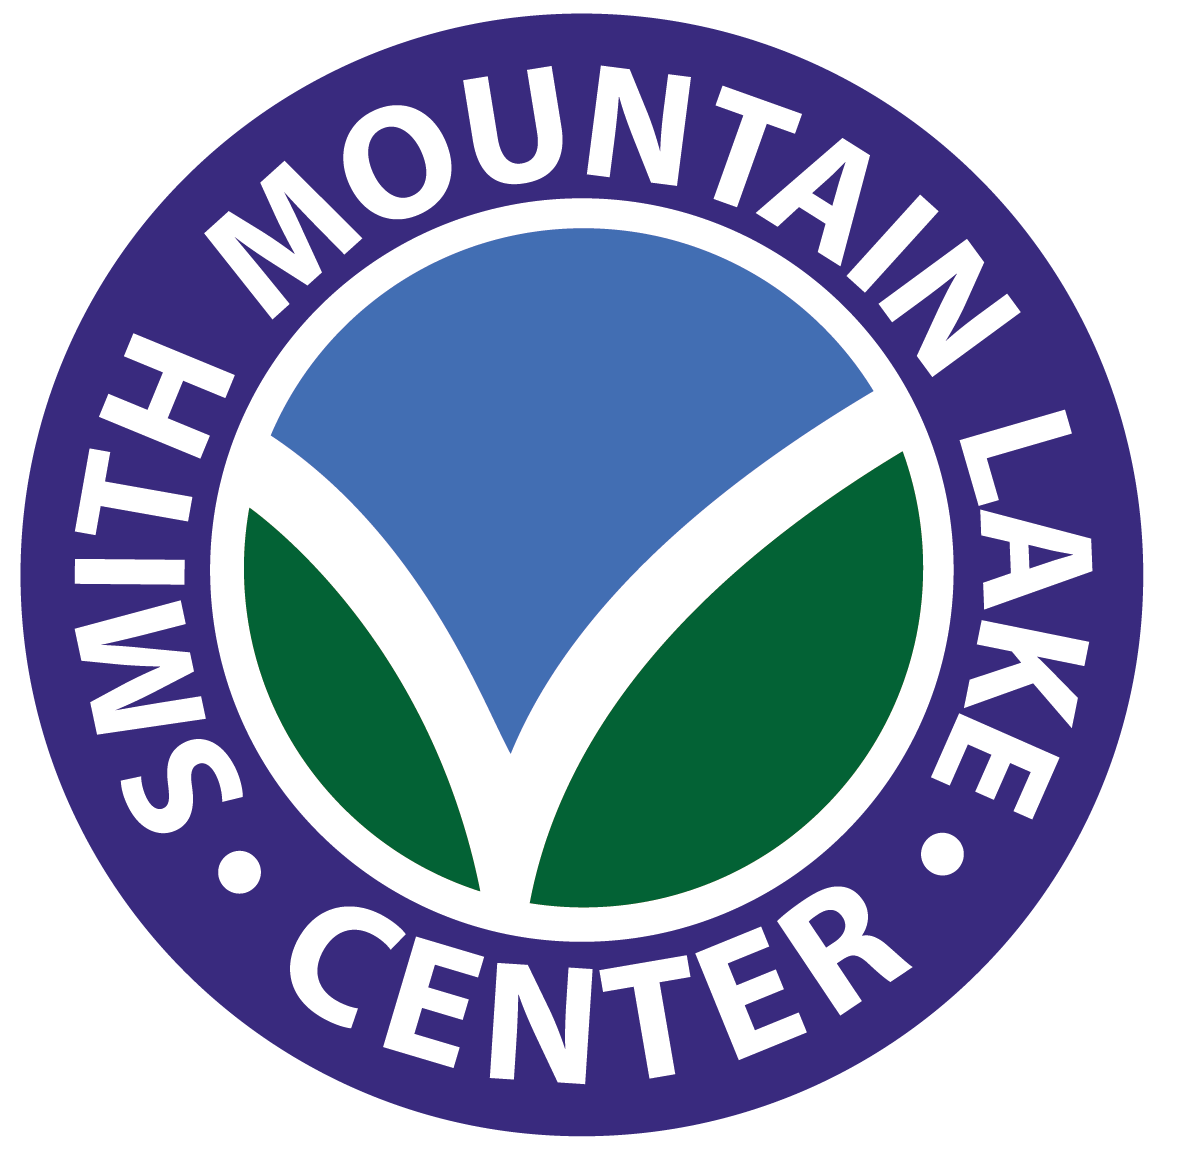 Smith Mountain Lake Center